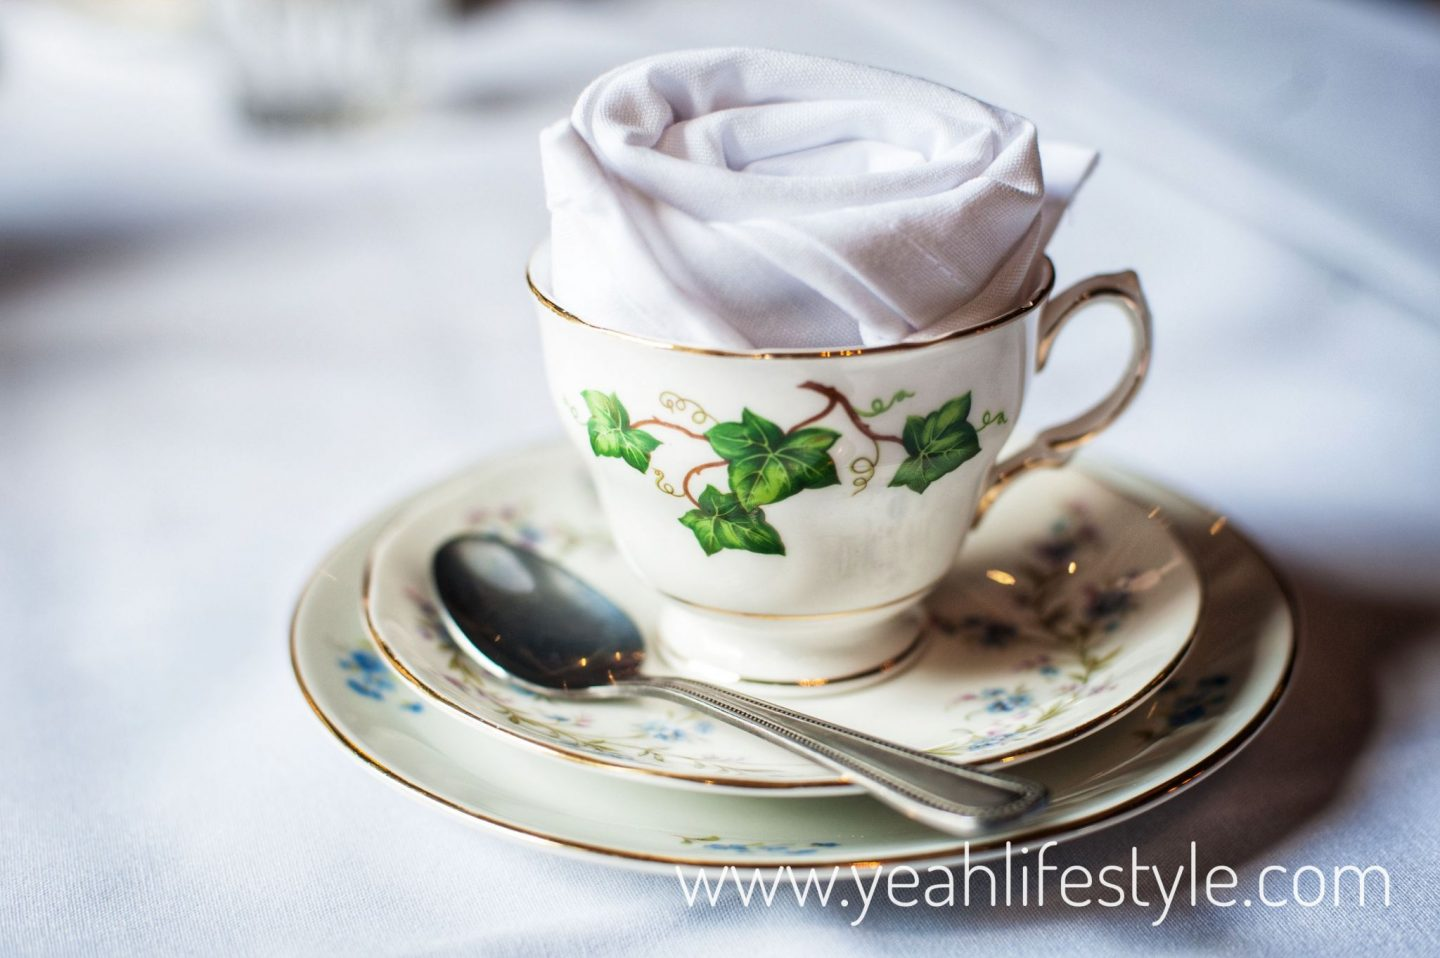 Afternoon-tea-vicerage-holmes-chappel-savoury-classic-teapot-english